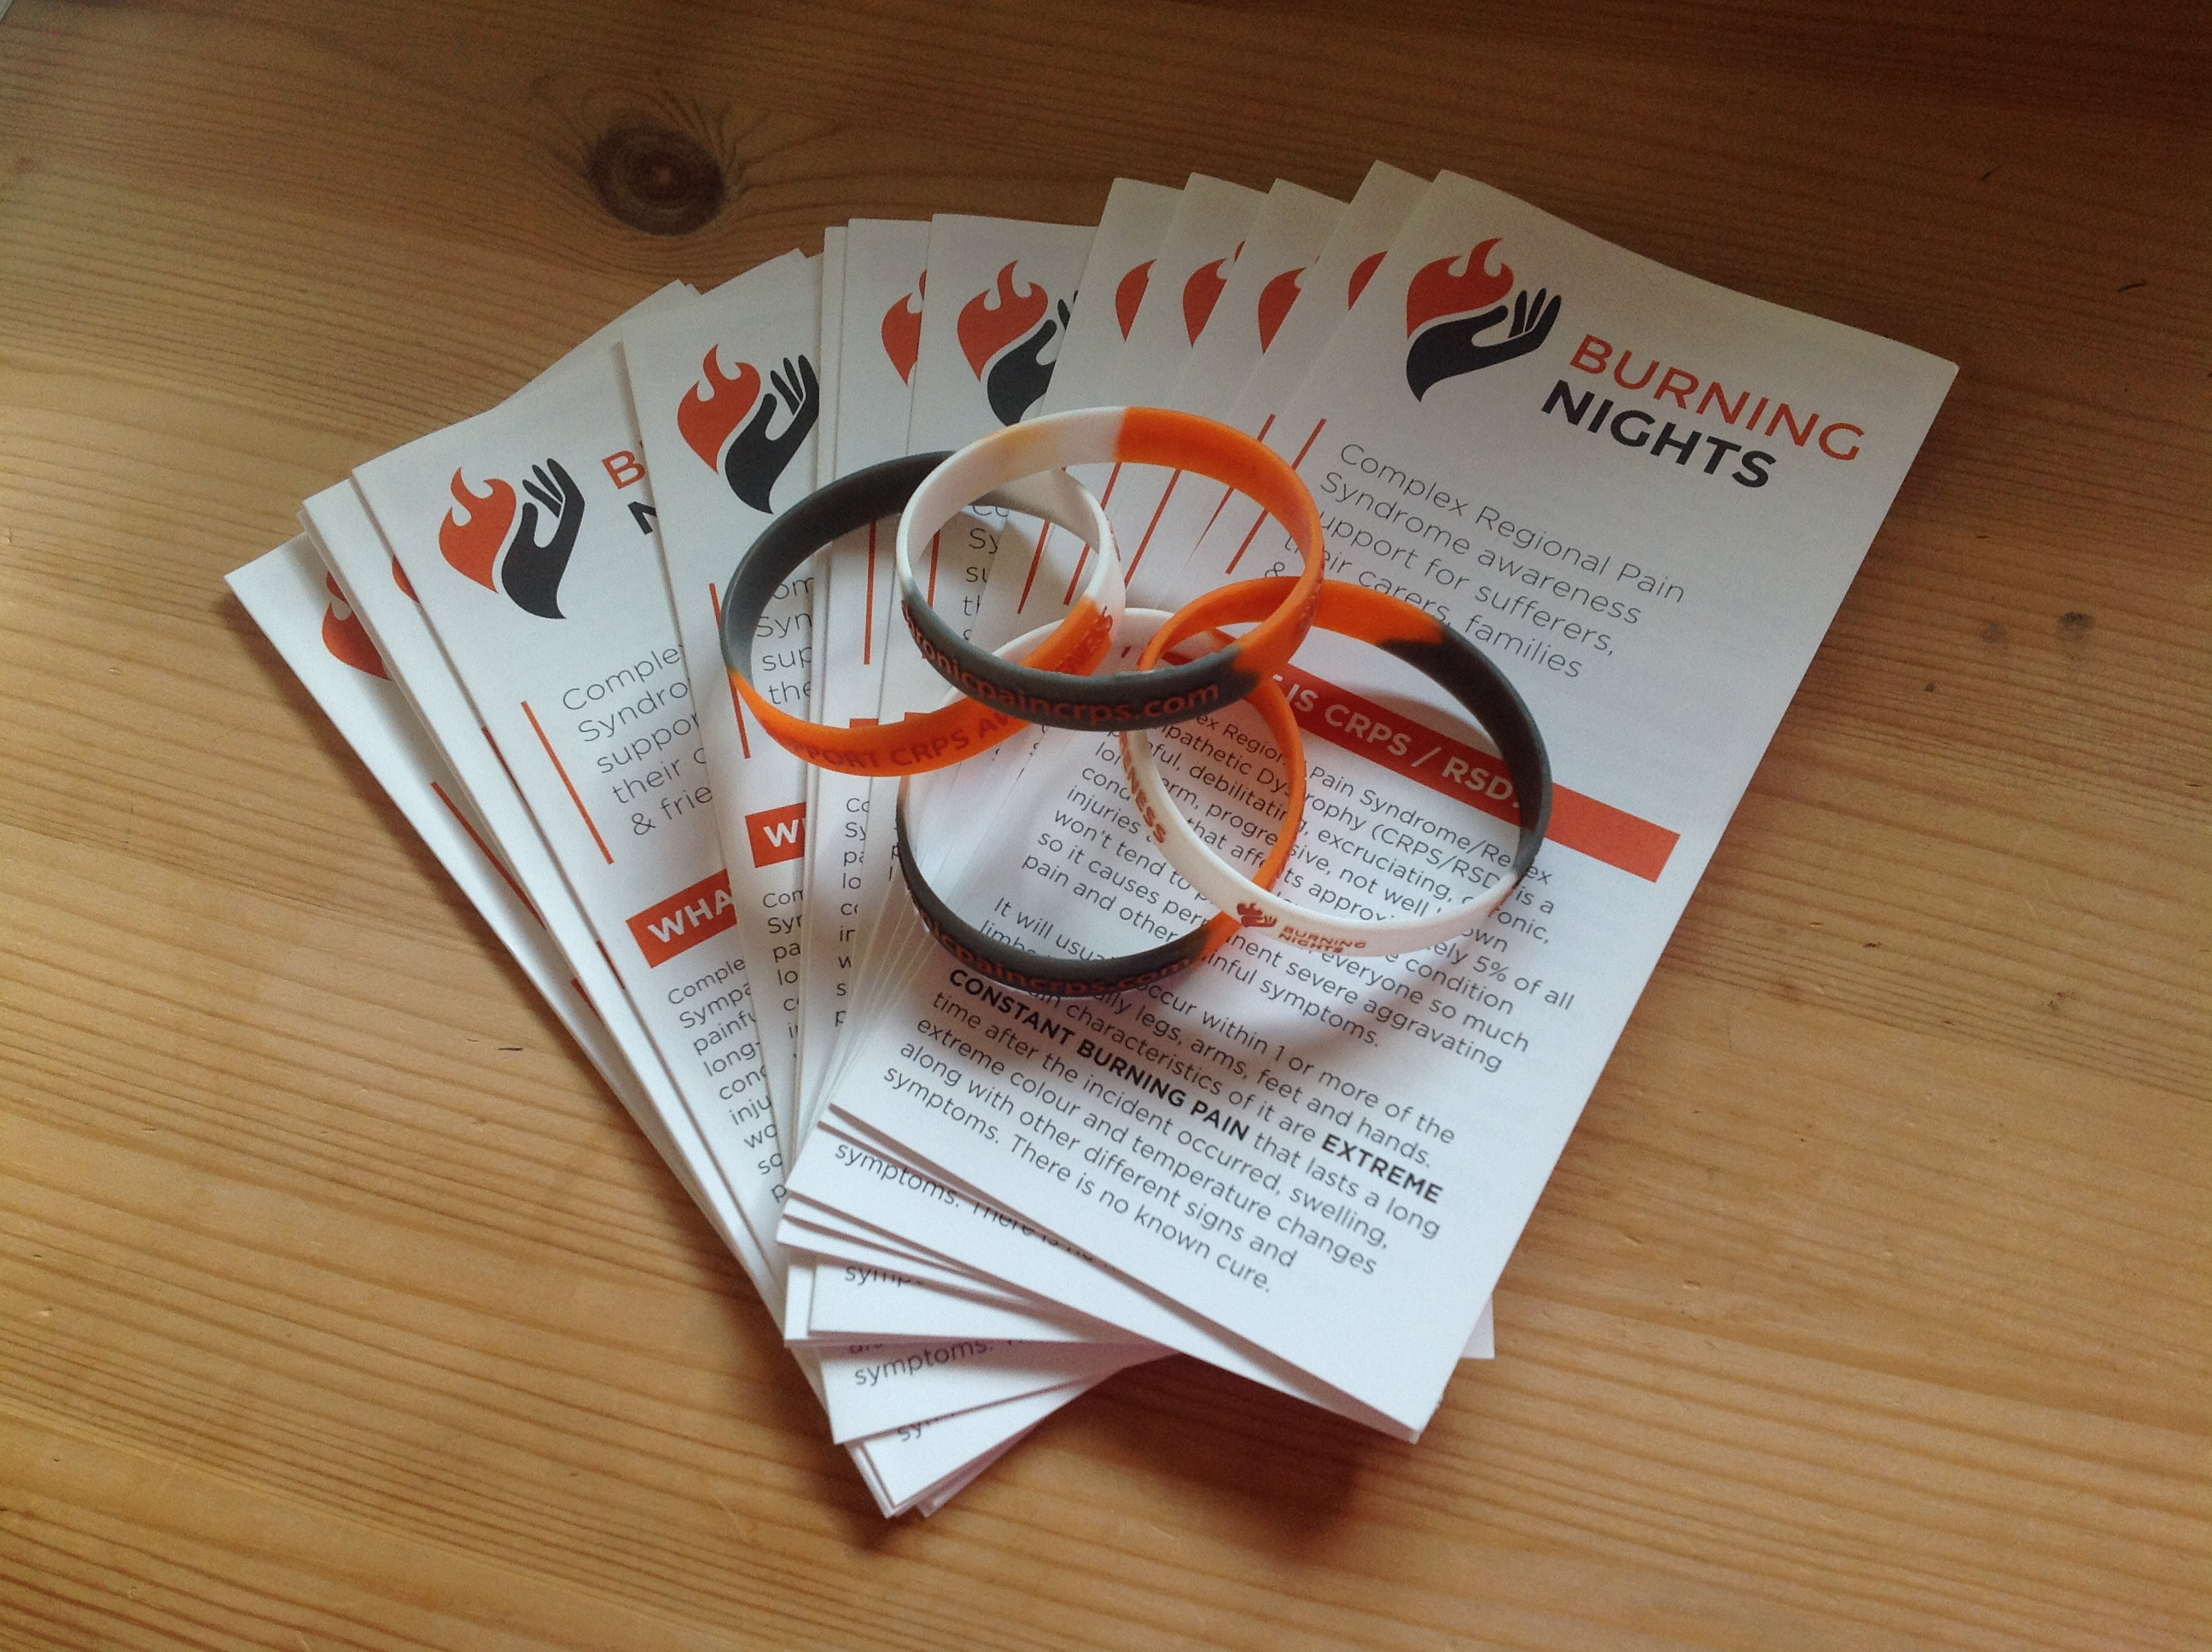 Support CRPS awareness wristband and leaflet